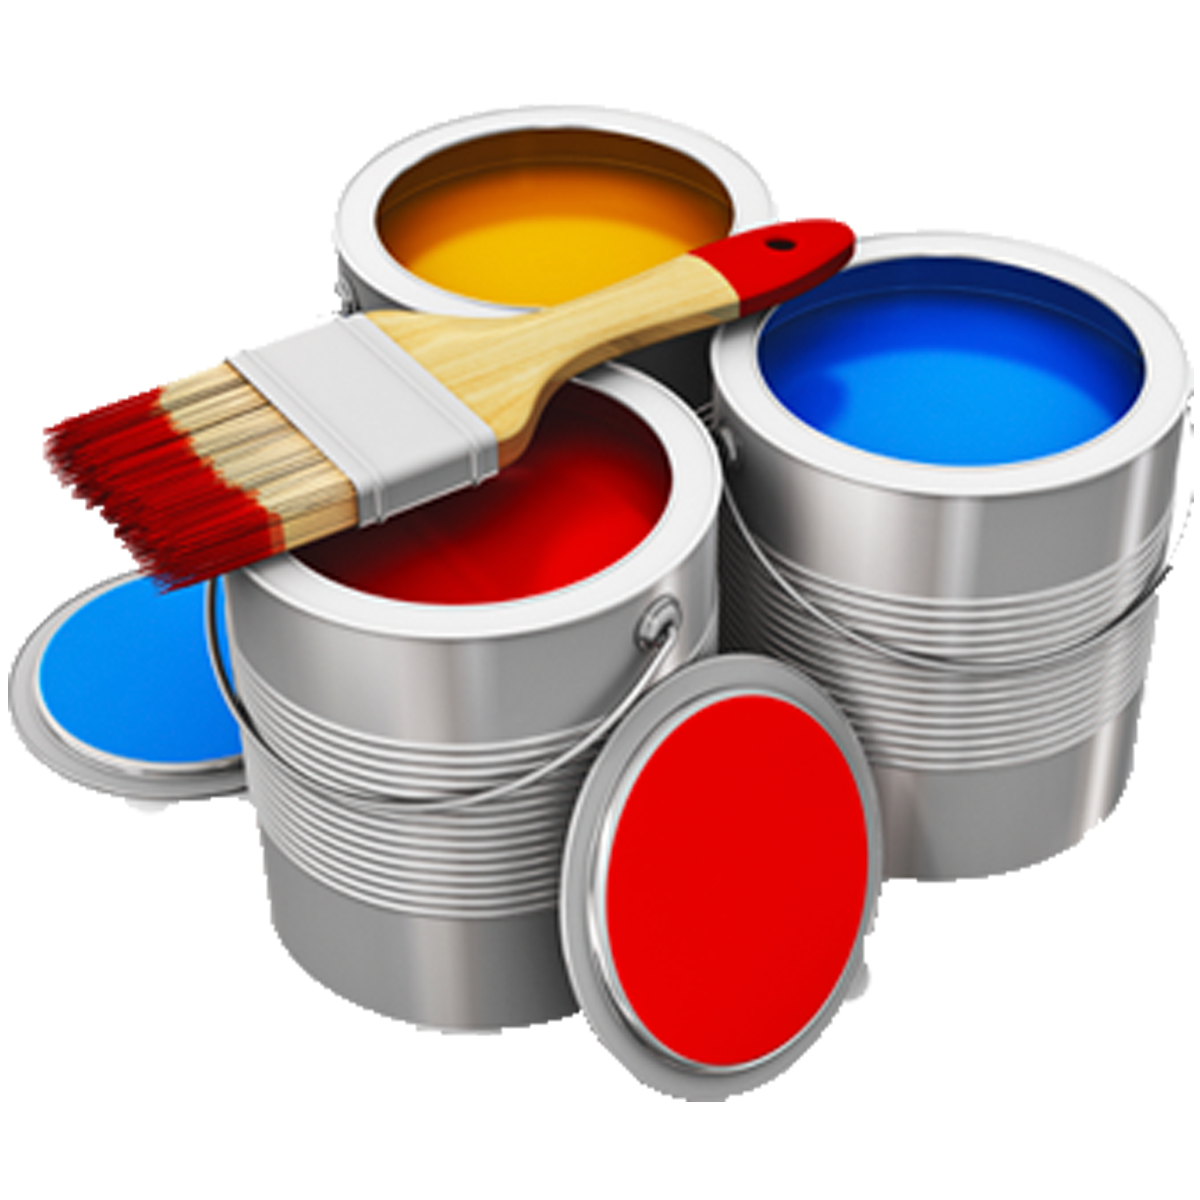 HUGE SELECTION OF INDUSTRIAL PAINTS FOR ALL APPLICATIONS